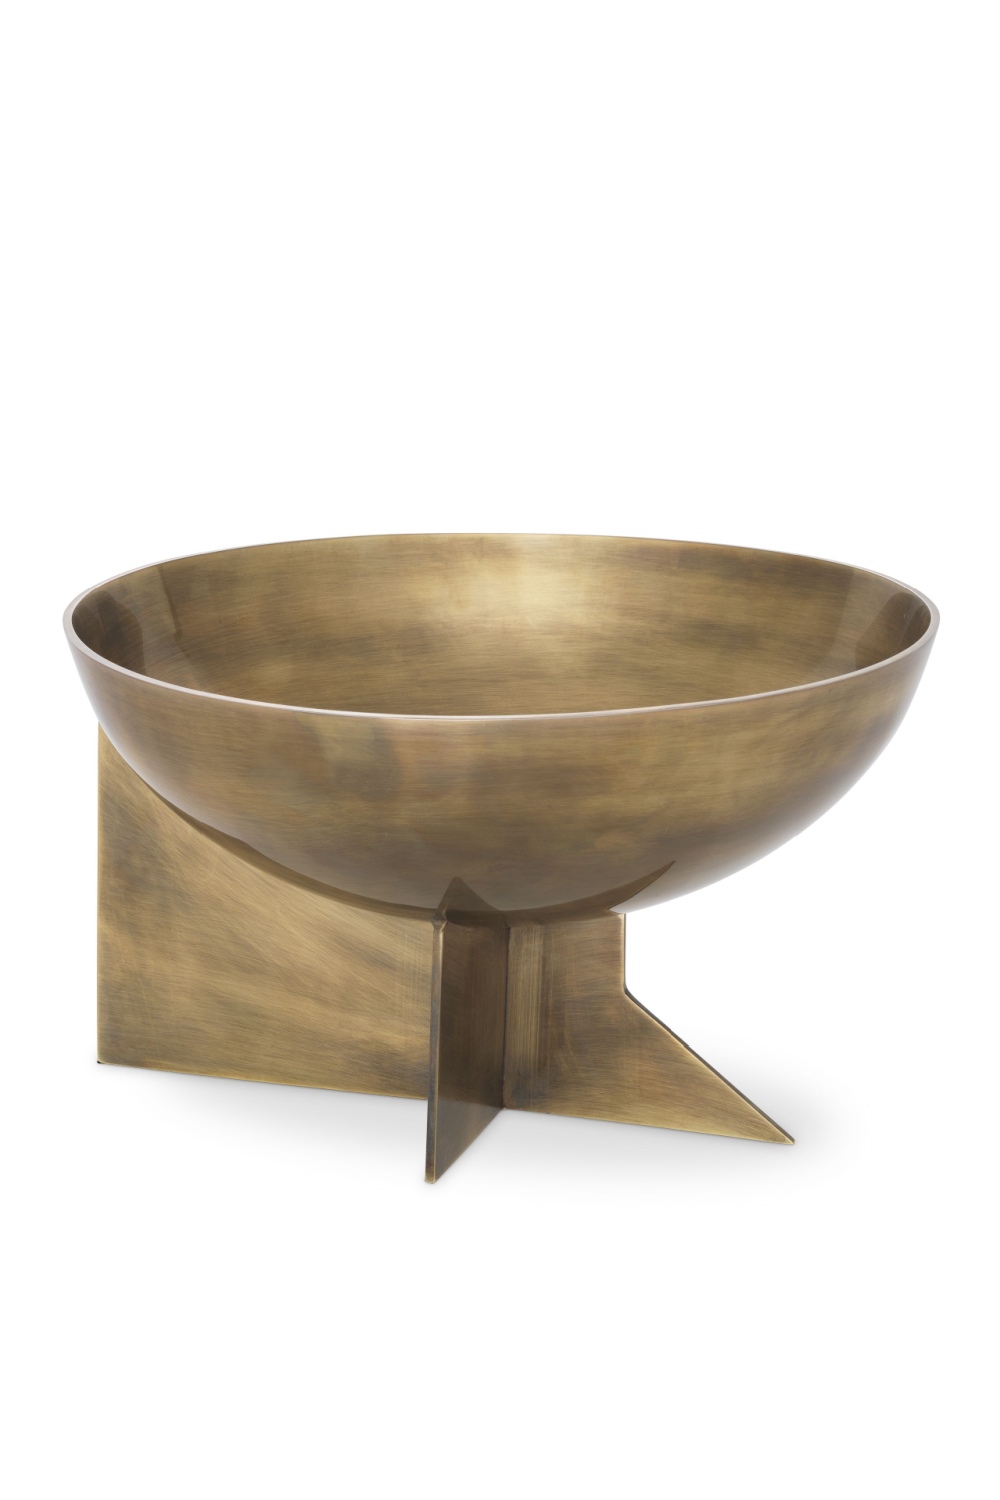 Brass Decorative Bowl | Eichholtz Atalante | OROA Luxury Furniture